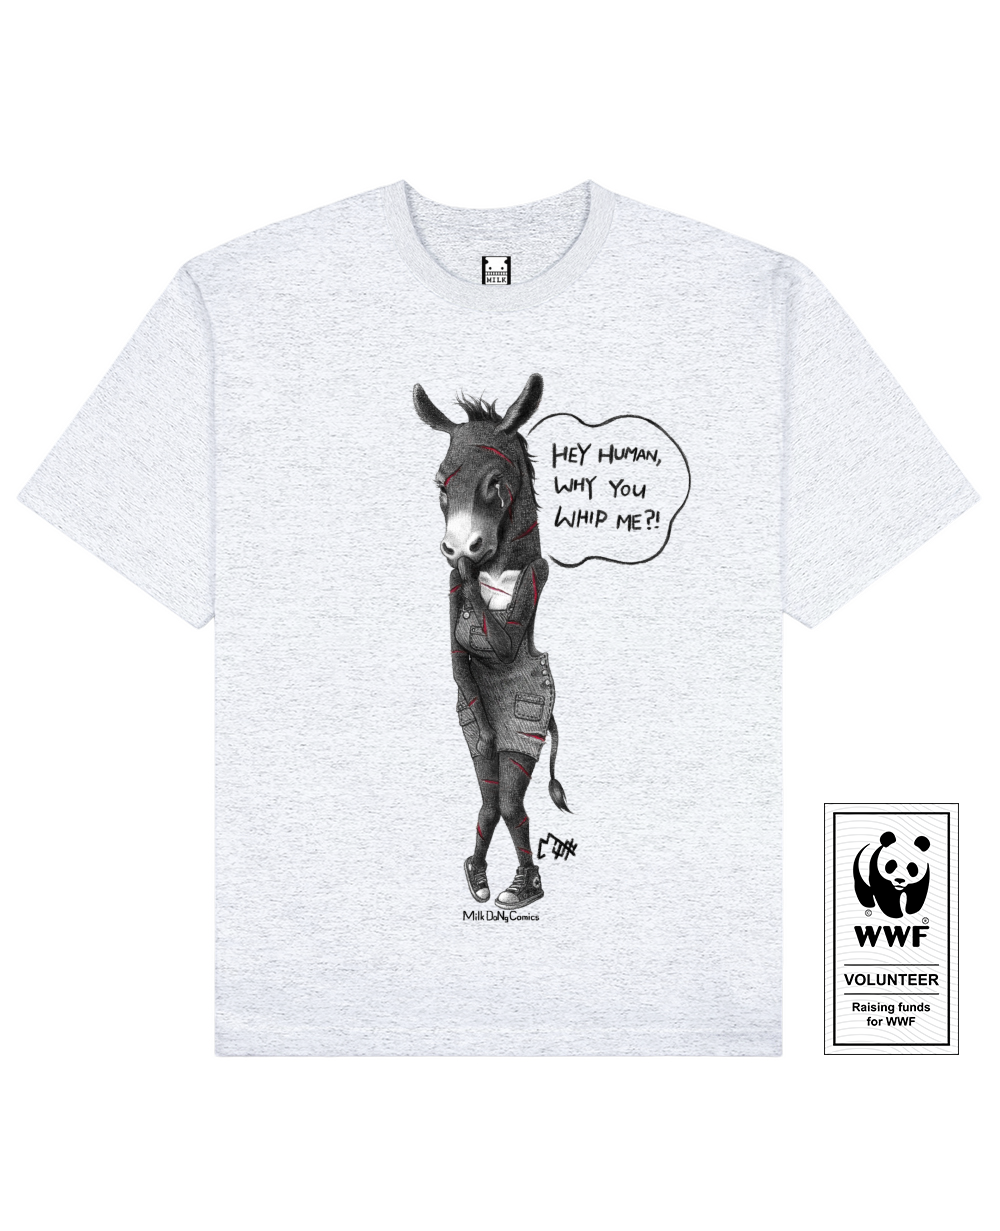 EJIAO DONKEY Printed T-Shirt in Light Gray - T-Shirts - Milk DoNg Comics - BRANMA